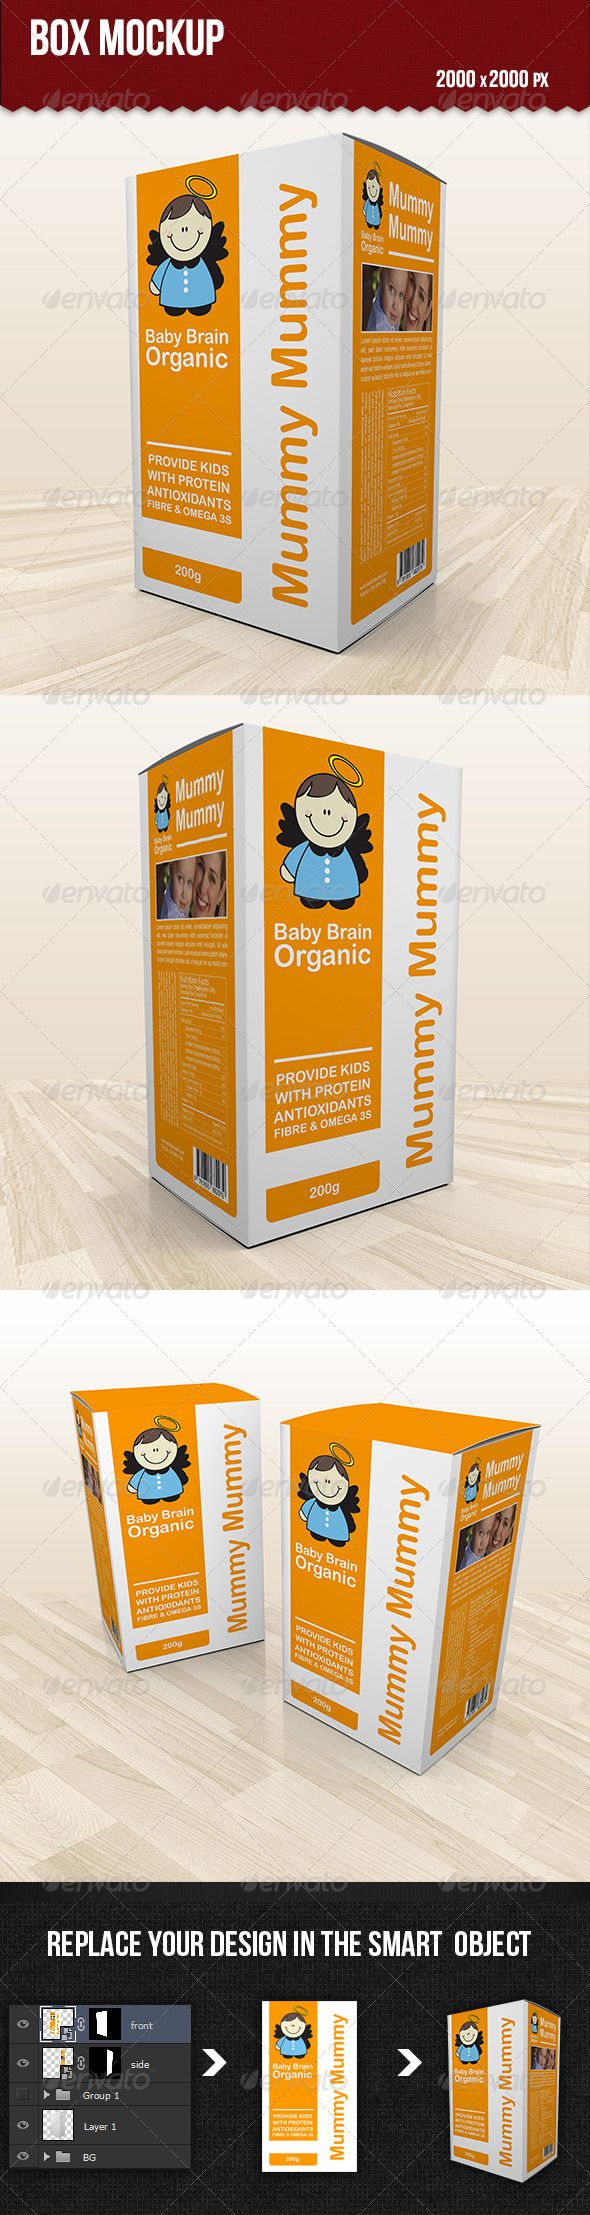 Box Mockup — Photoshop PSD #box psd #promotional • Available here → https://graphicriver.net/item/box-mockup/5400287?ref=pxcr